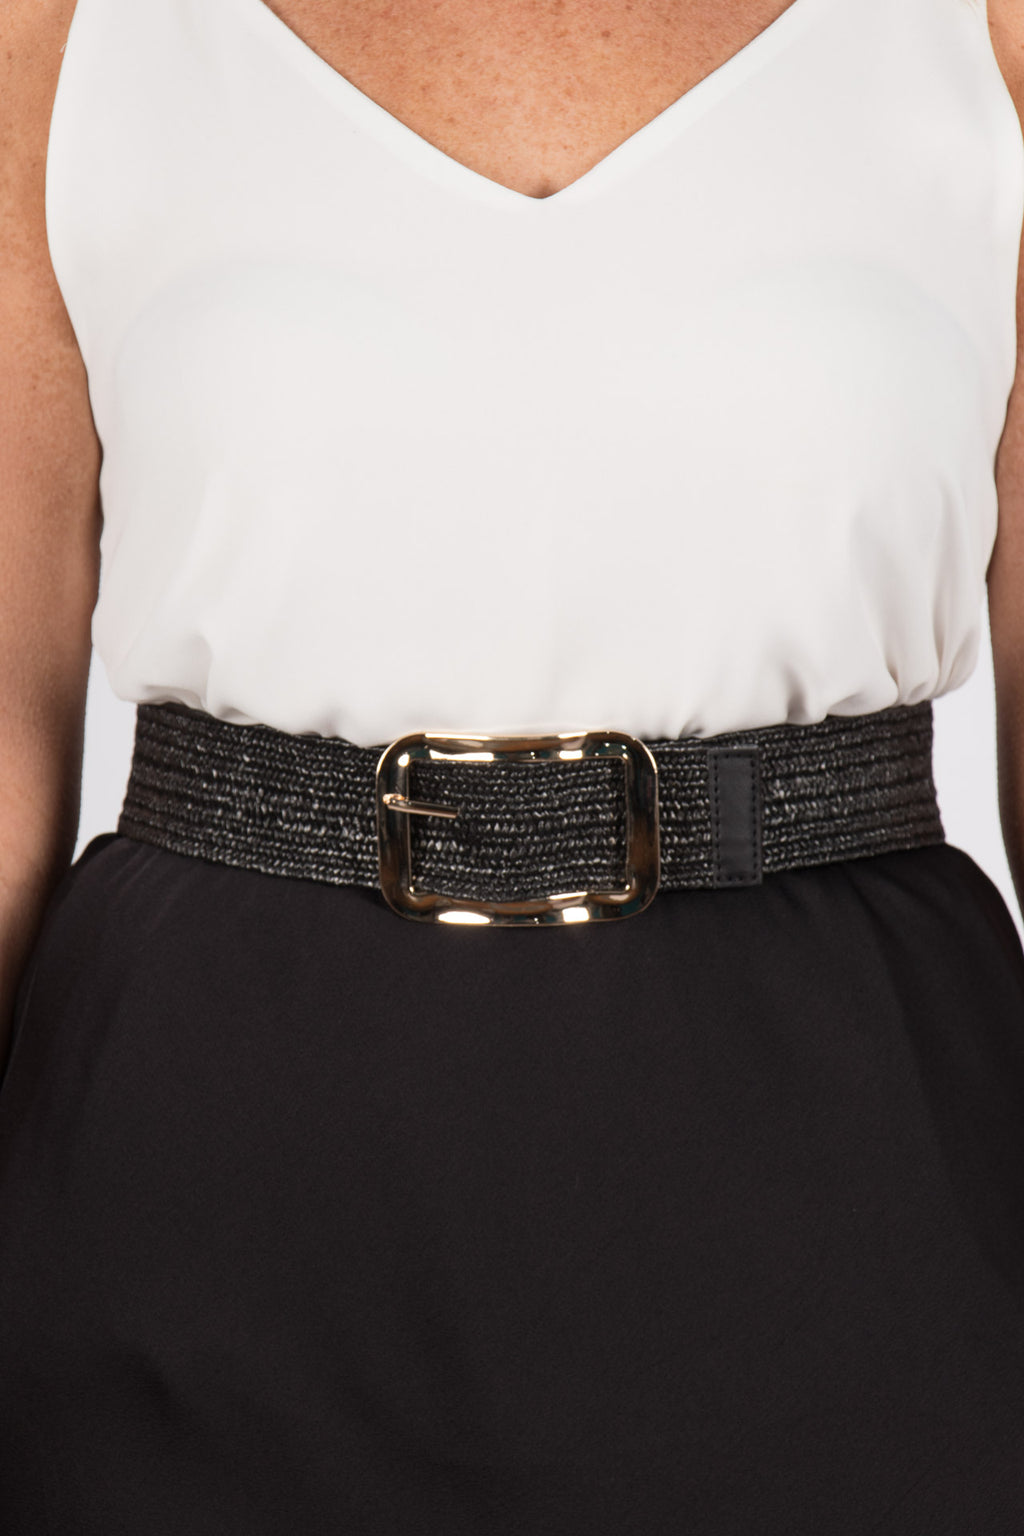 Maddison Stretch Belt in Black